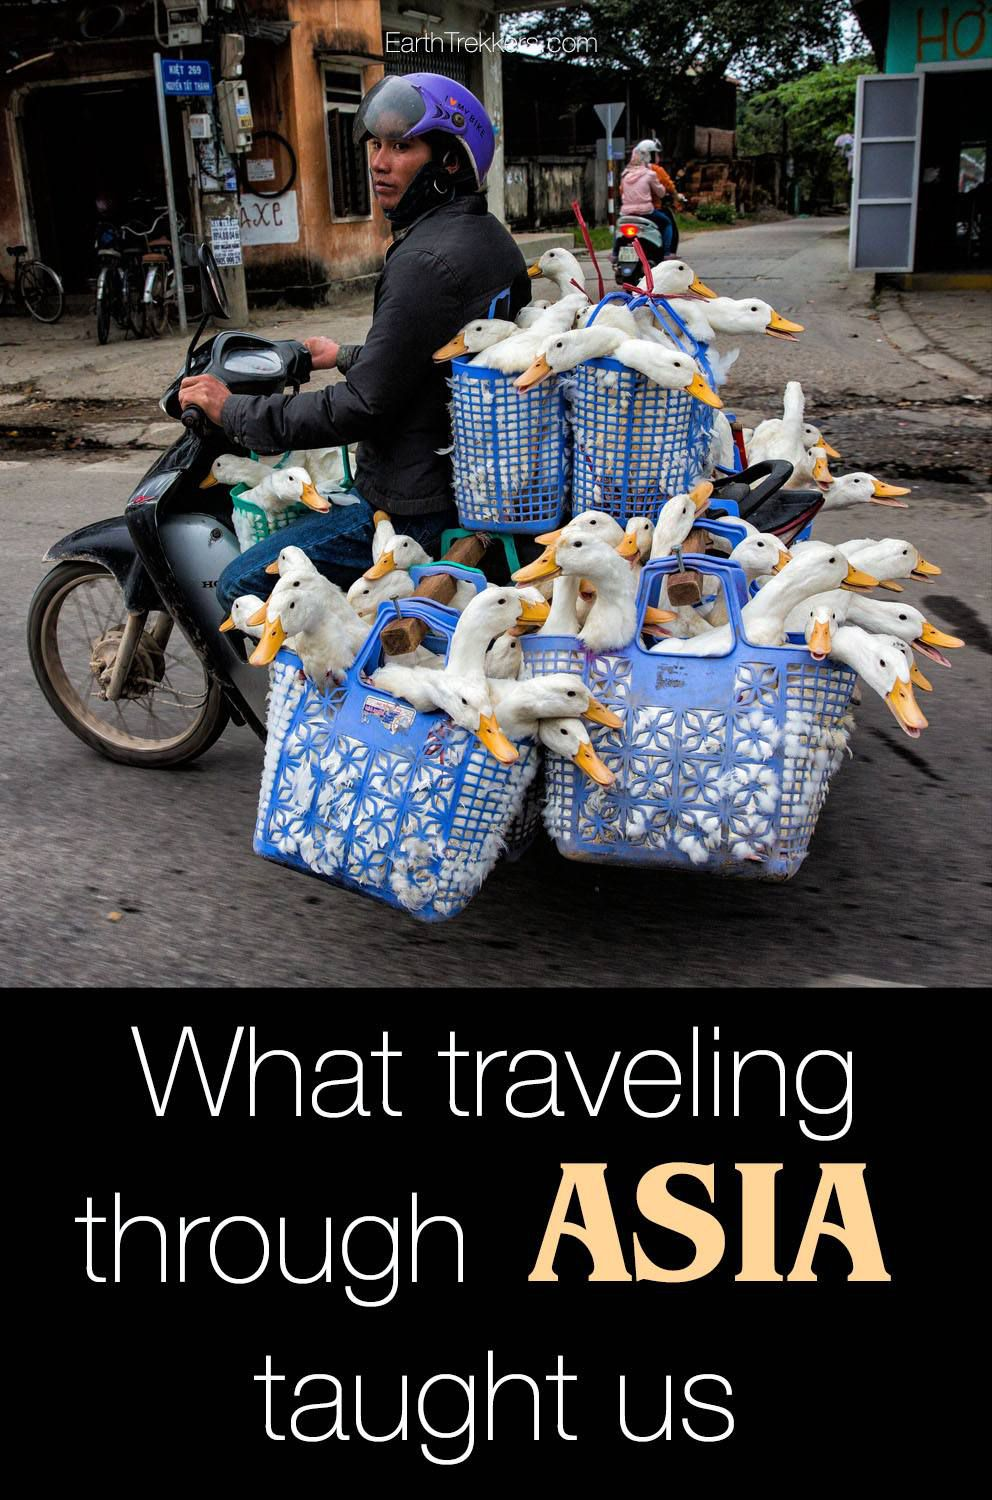 Lessons learned after traveling long term through Asia